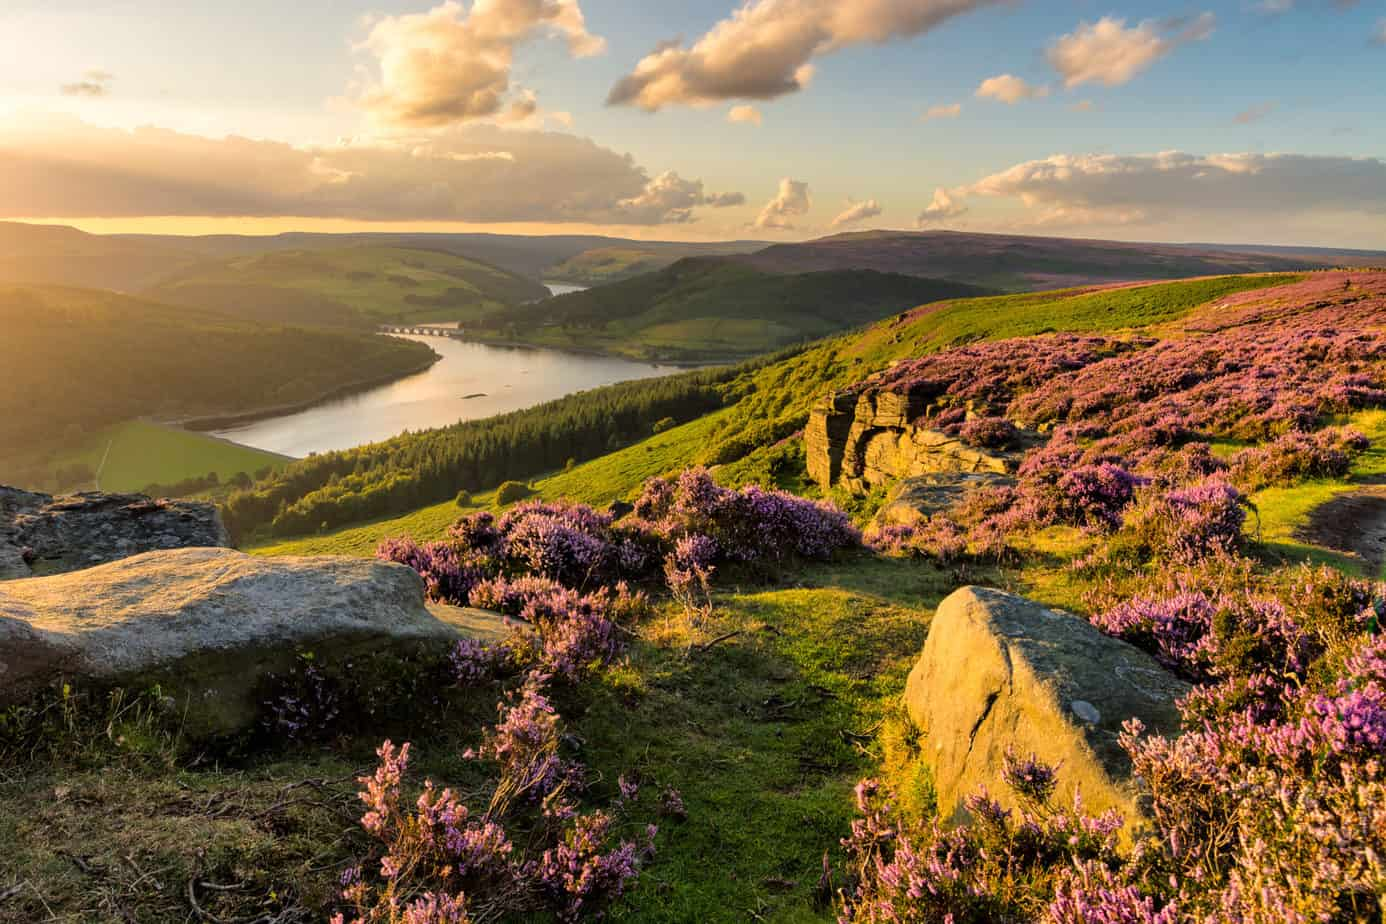 best places to visit in the uk - beautiful sunset over English countryside and mountains with purple flowers